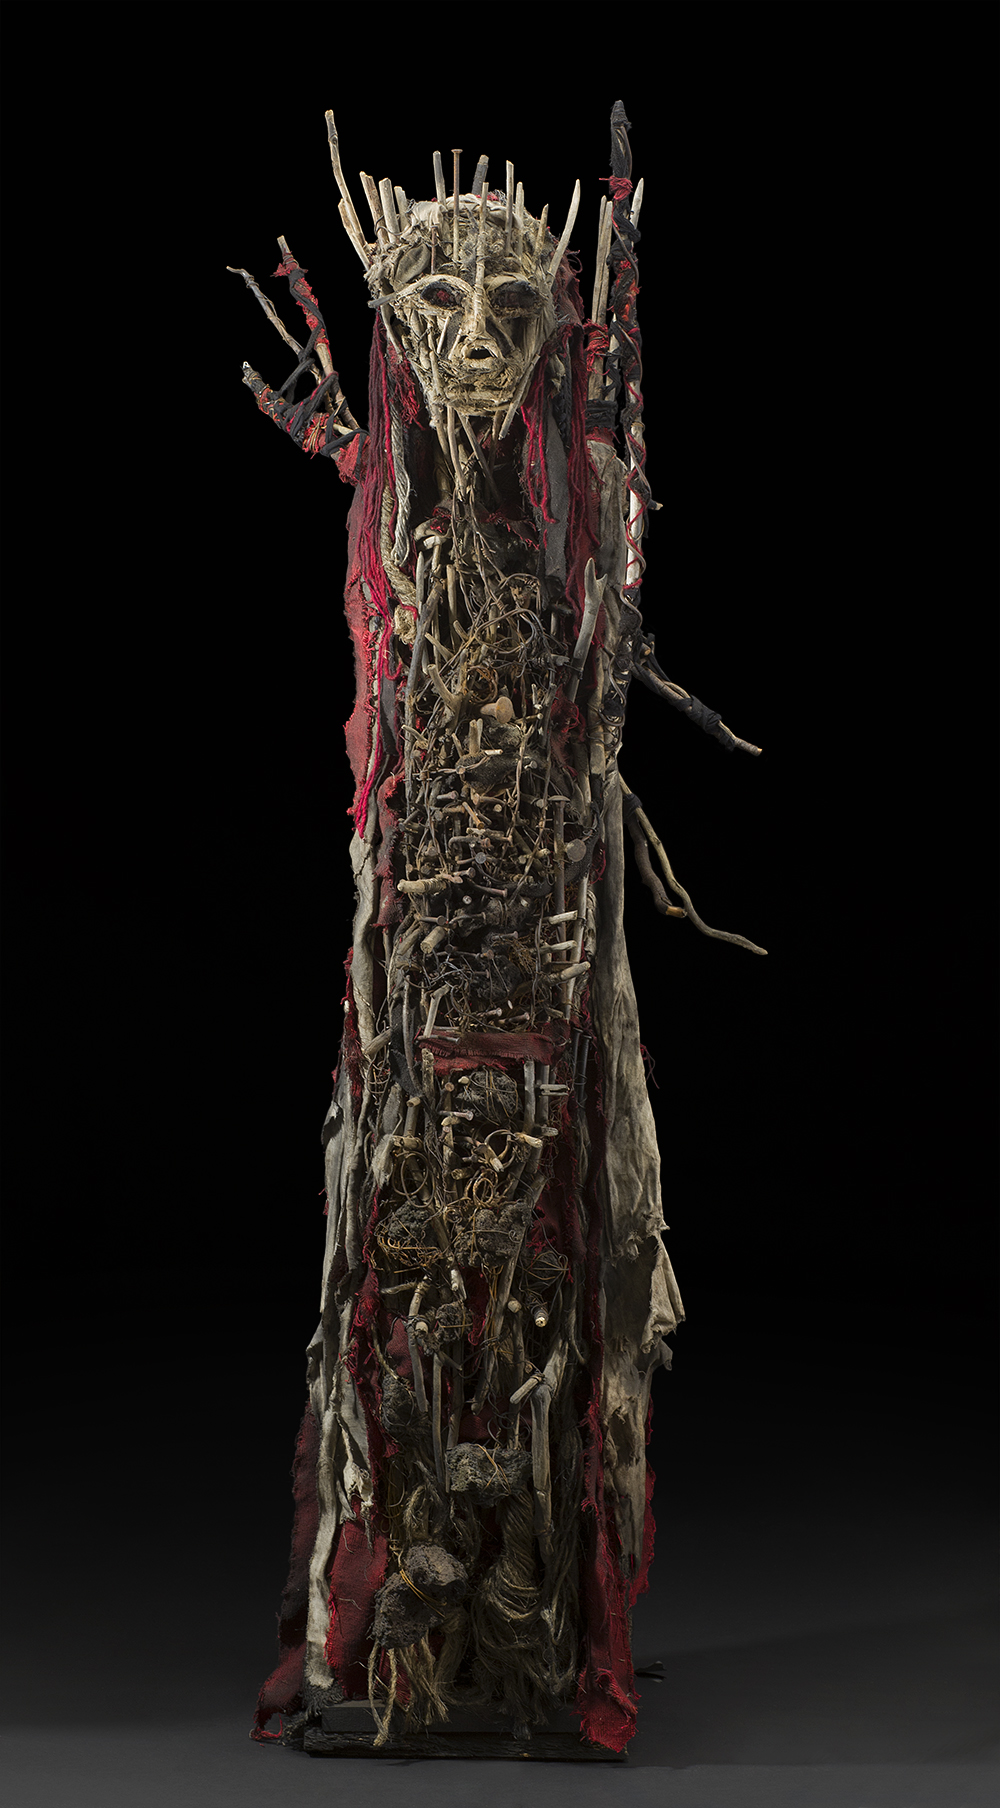 Sylvain and Ghyslaine Staelens,    Personnage  , 2015, Wood, metal, cloth, found objects, 66 x 21 x 14 inches, 167.6 x 53.3 x 35.6 cm, GSS 43